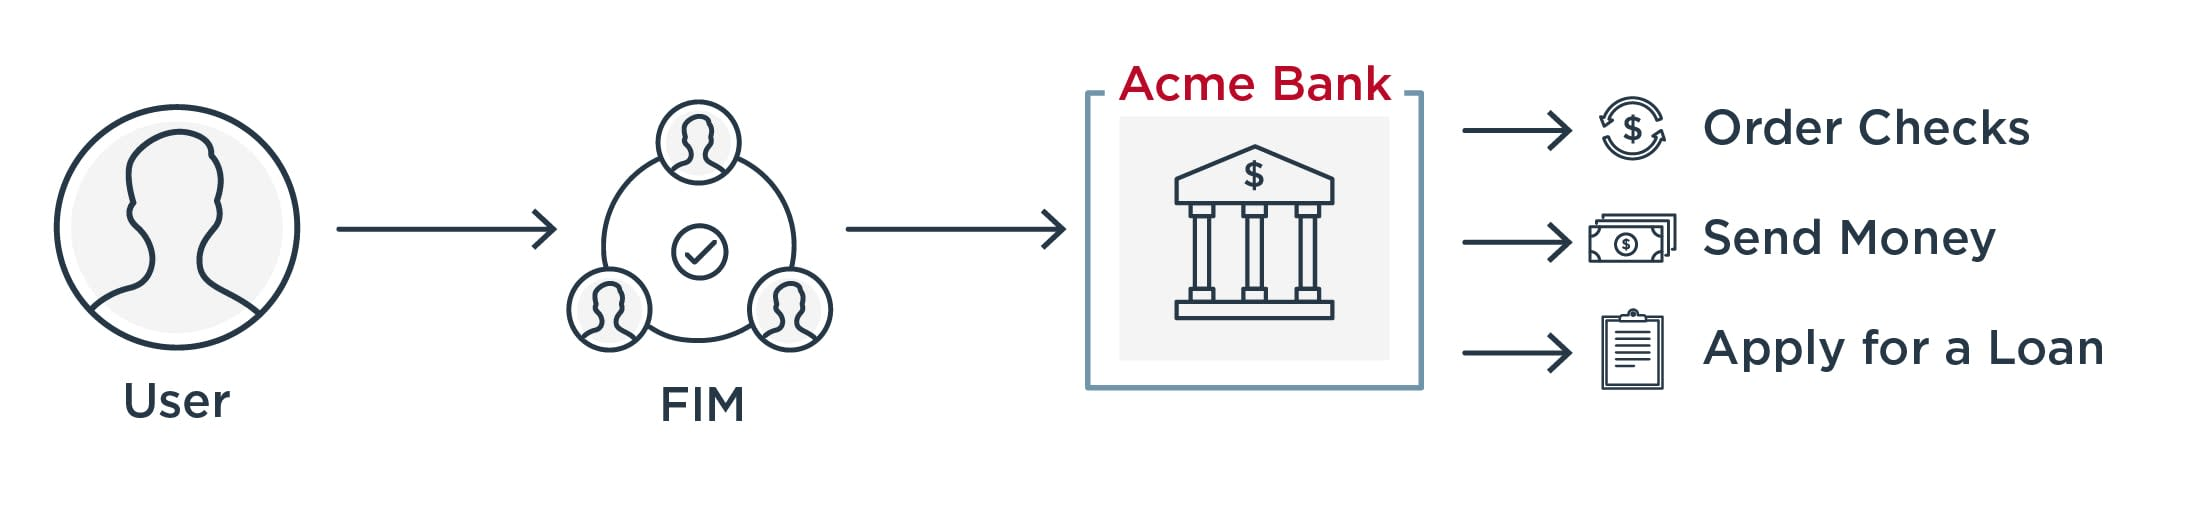 Diagram of single sign-on process being implemented at Acme Bank